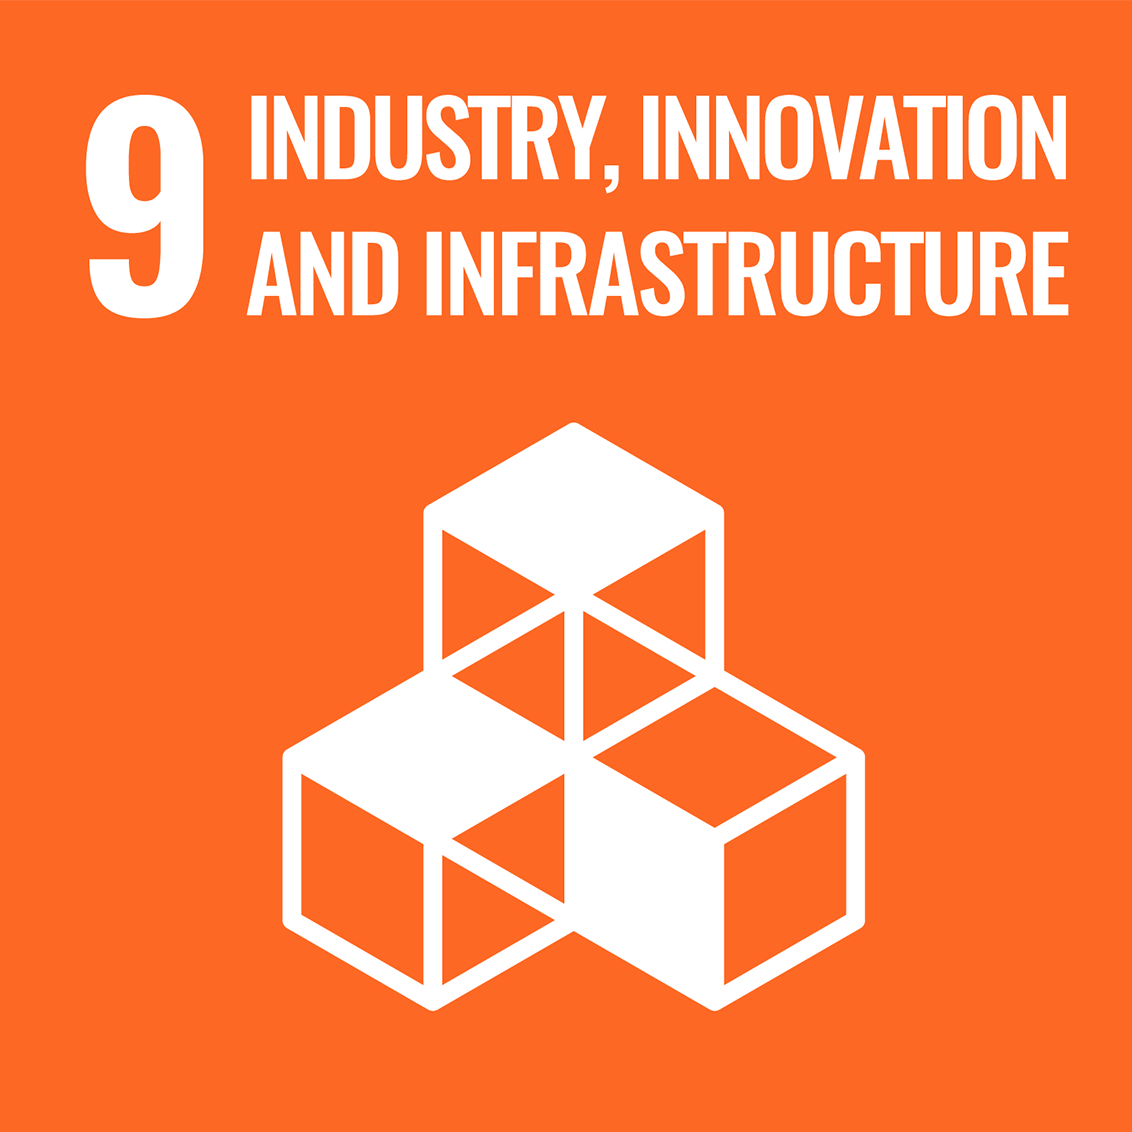 Icon for the UN Sustainable Development Goal 9